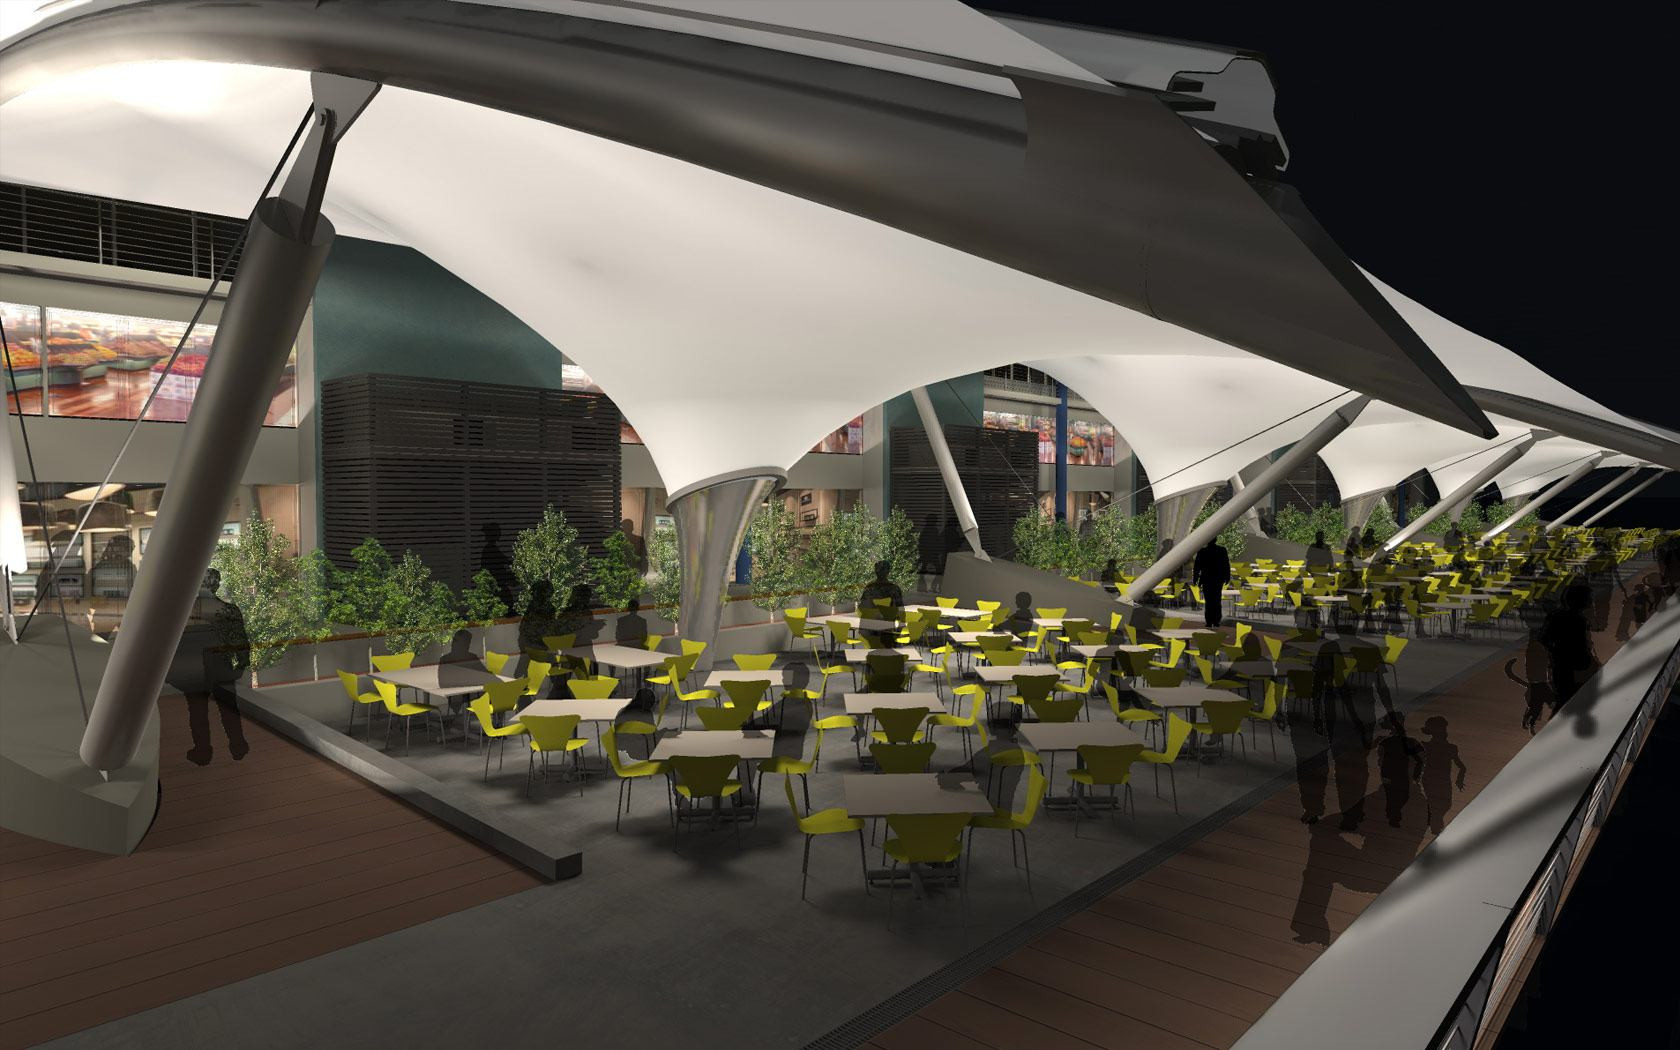 Sydney Fish markets design drawing of the outdoor seating